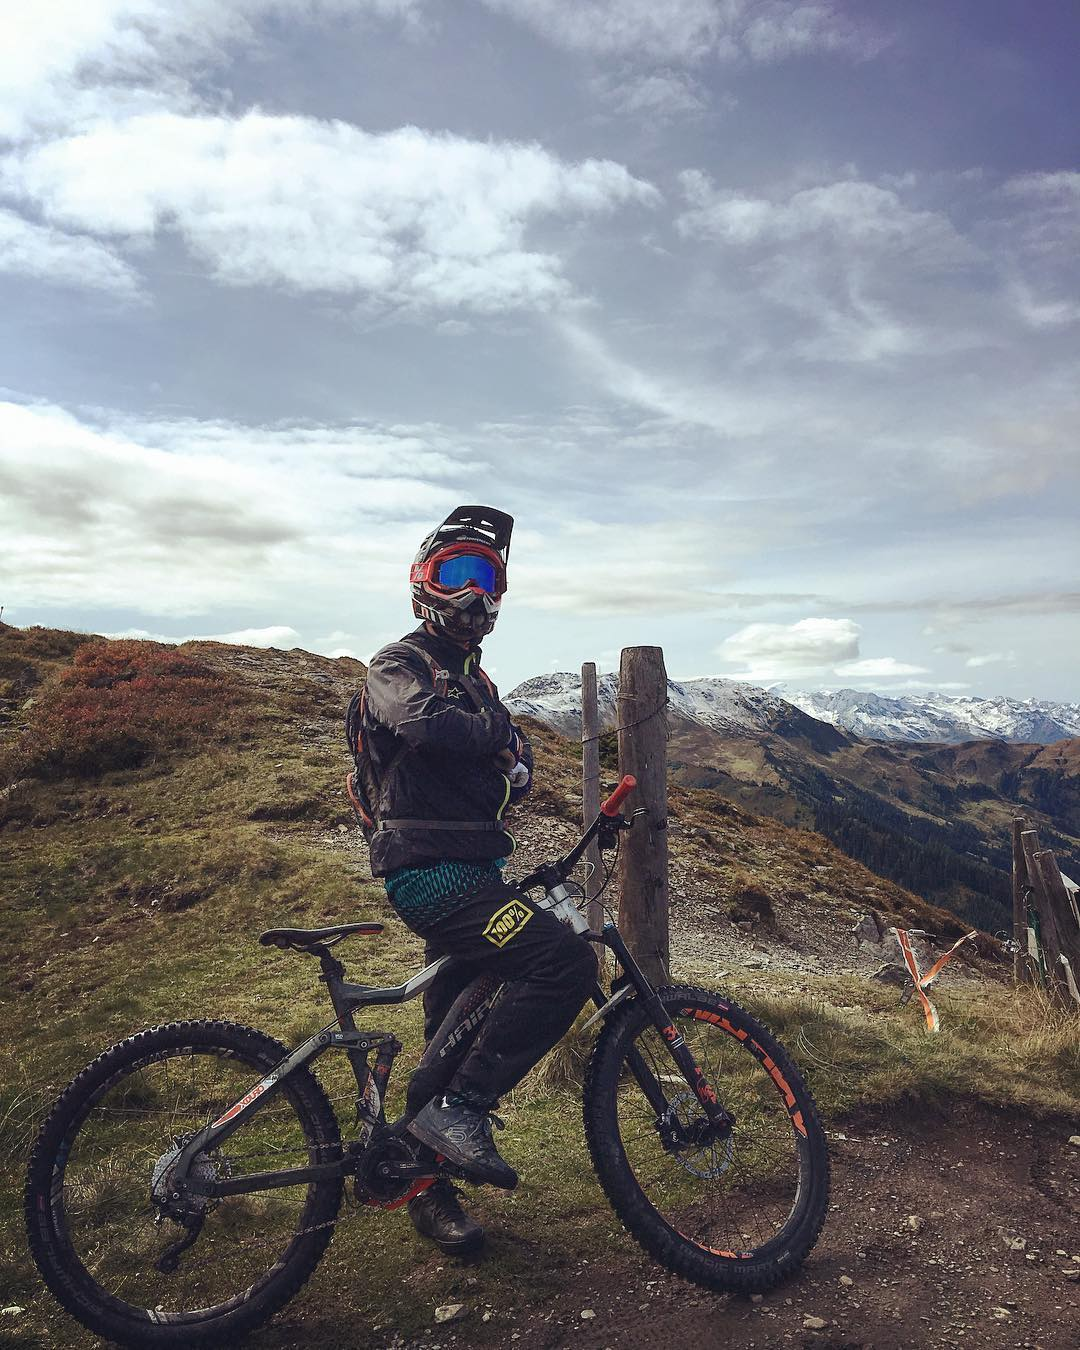 So ready to hit the trails again! Testing the bikes we design in full-on alpine environment helps to develop a better product and to empathize with our customers… and to look cool 😎😂 #haibike #xduro #ebike #emtb #emountainbike #downhill #saalbach #weareeperformance #coolschool